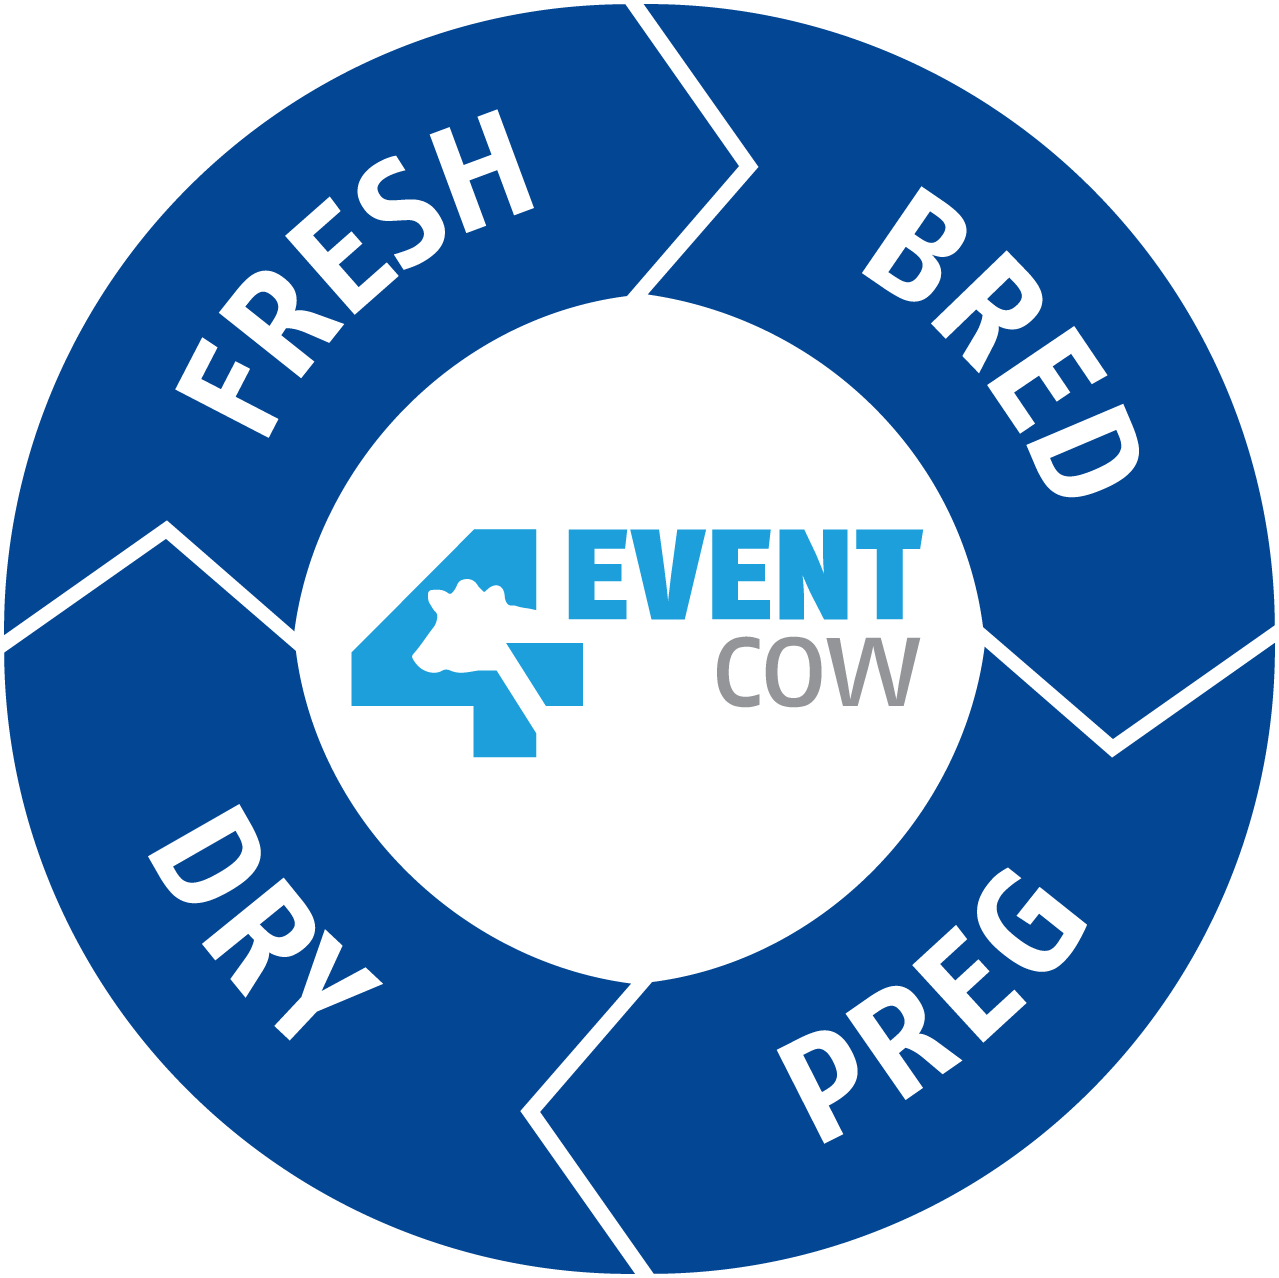 4-EVENT COW is one you hardly notice. In the span of her lactation, her cow card confirms just four major events: